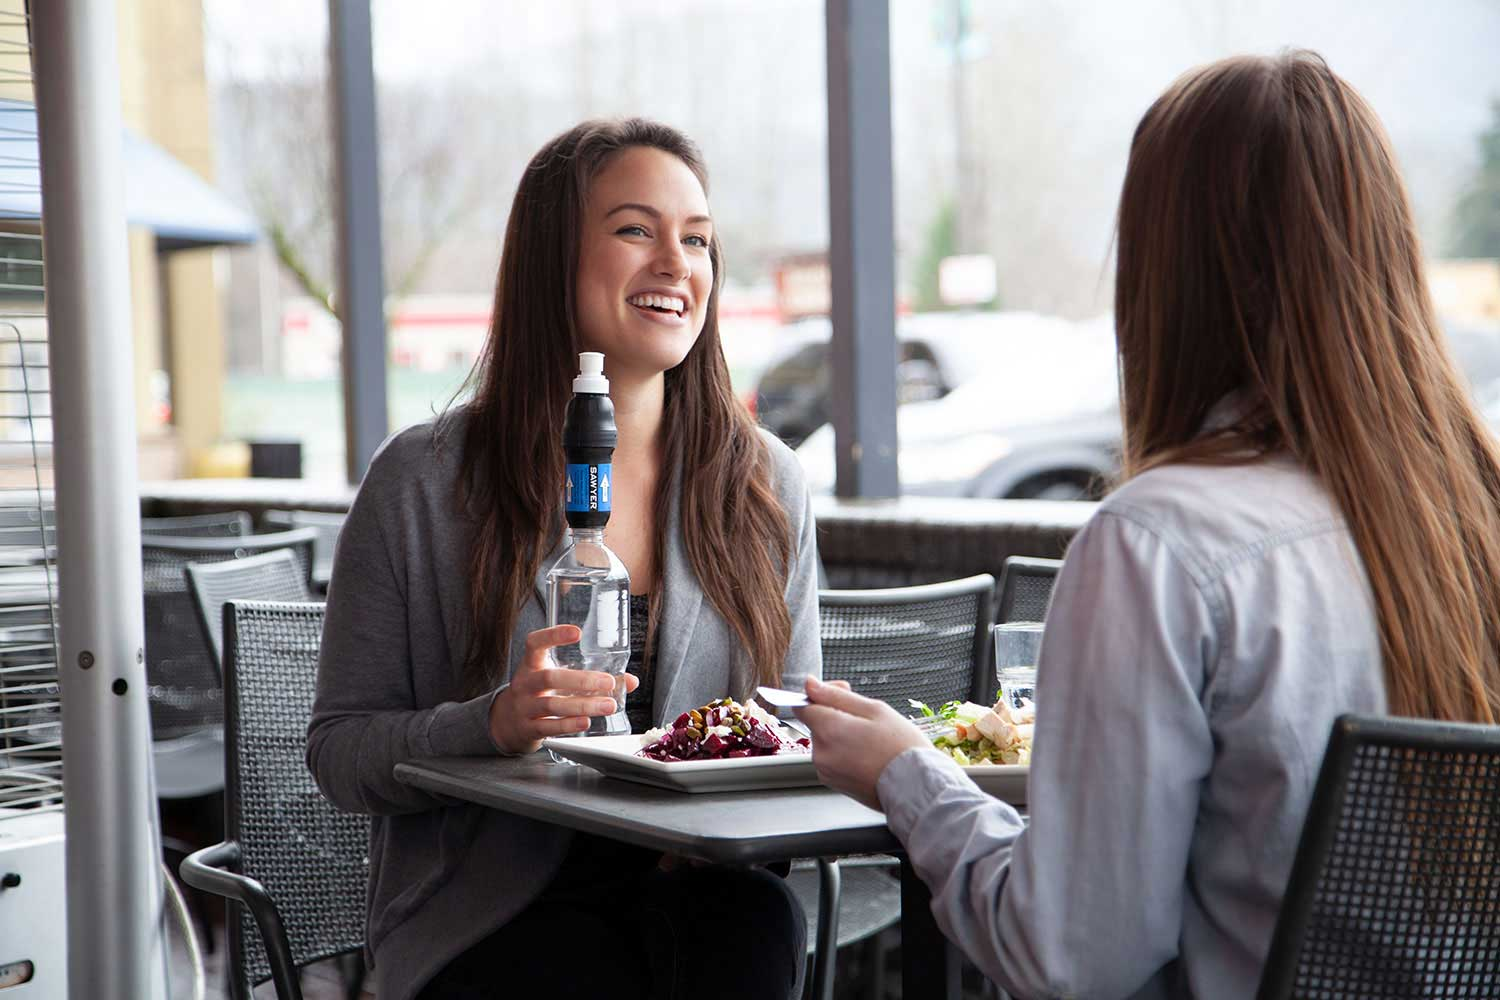 Two Women Use Sawyer Water Filters on Water Bottles While Traveling and Eating at a Restaurant